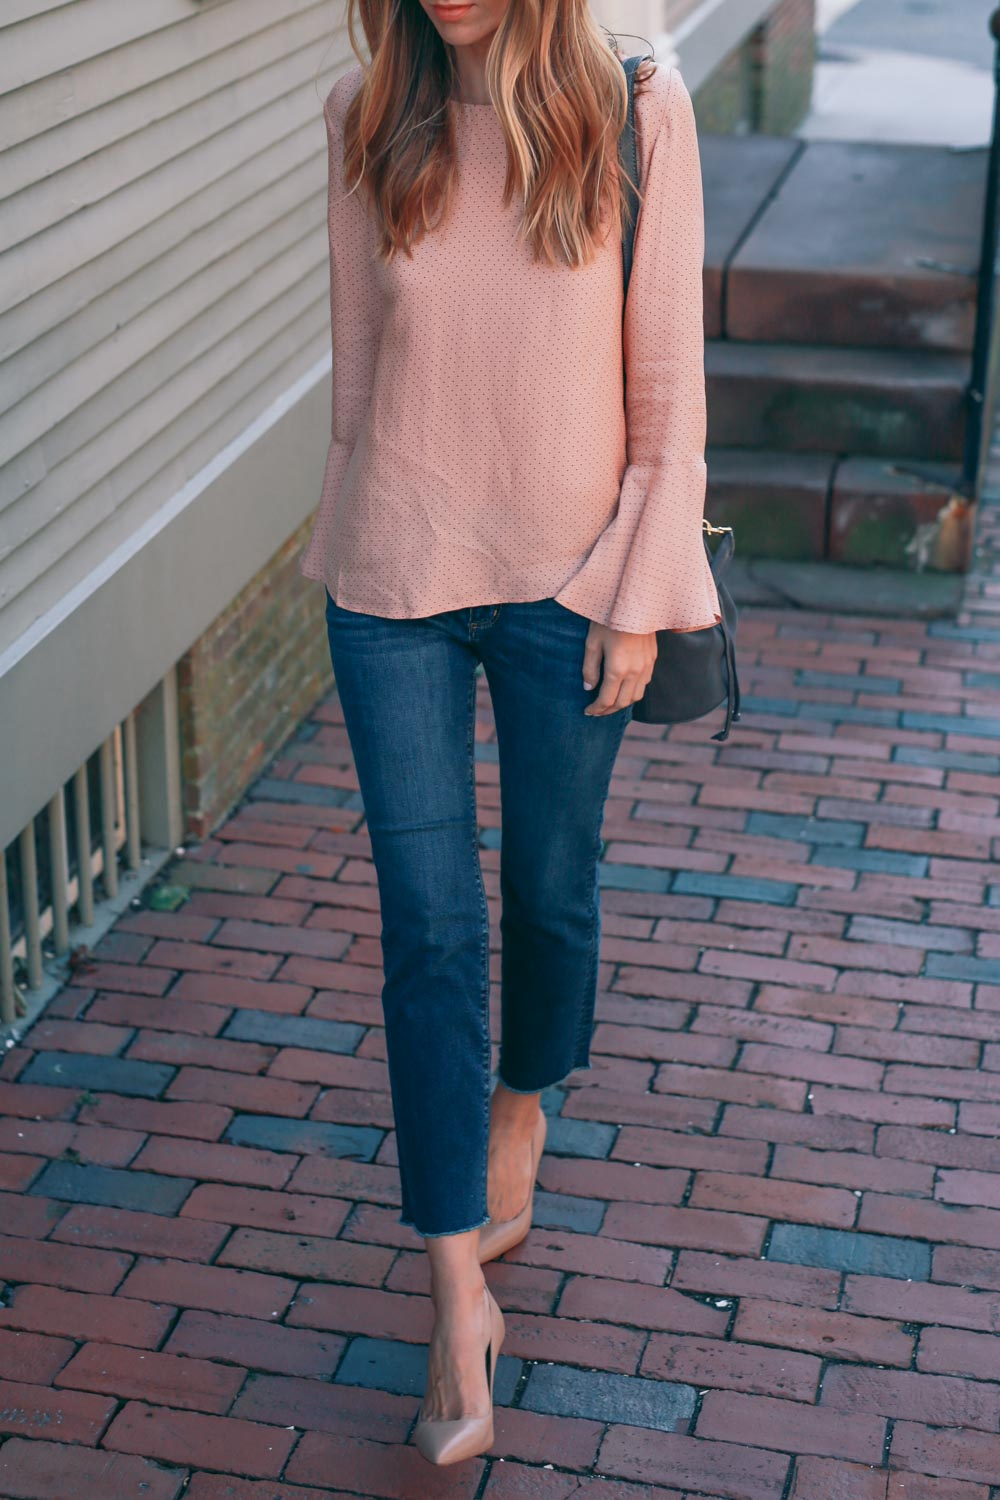 Bell sleeved blouses are both incredibly elegant and adaptable; Jess Ann Kirby pairs this piece with jeans, but it could also be worn with a mini or maxi skirt, depending on occasion.   Outfit: Ann Taylor.